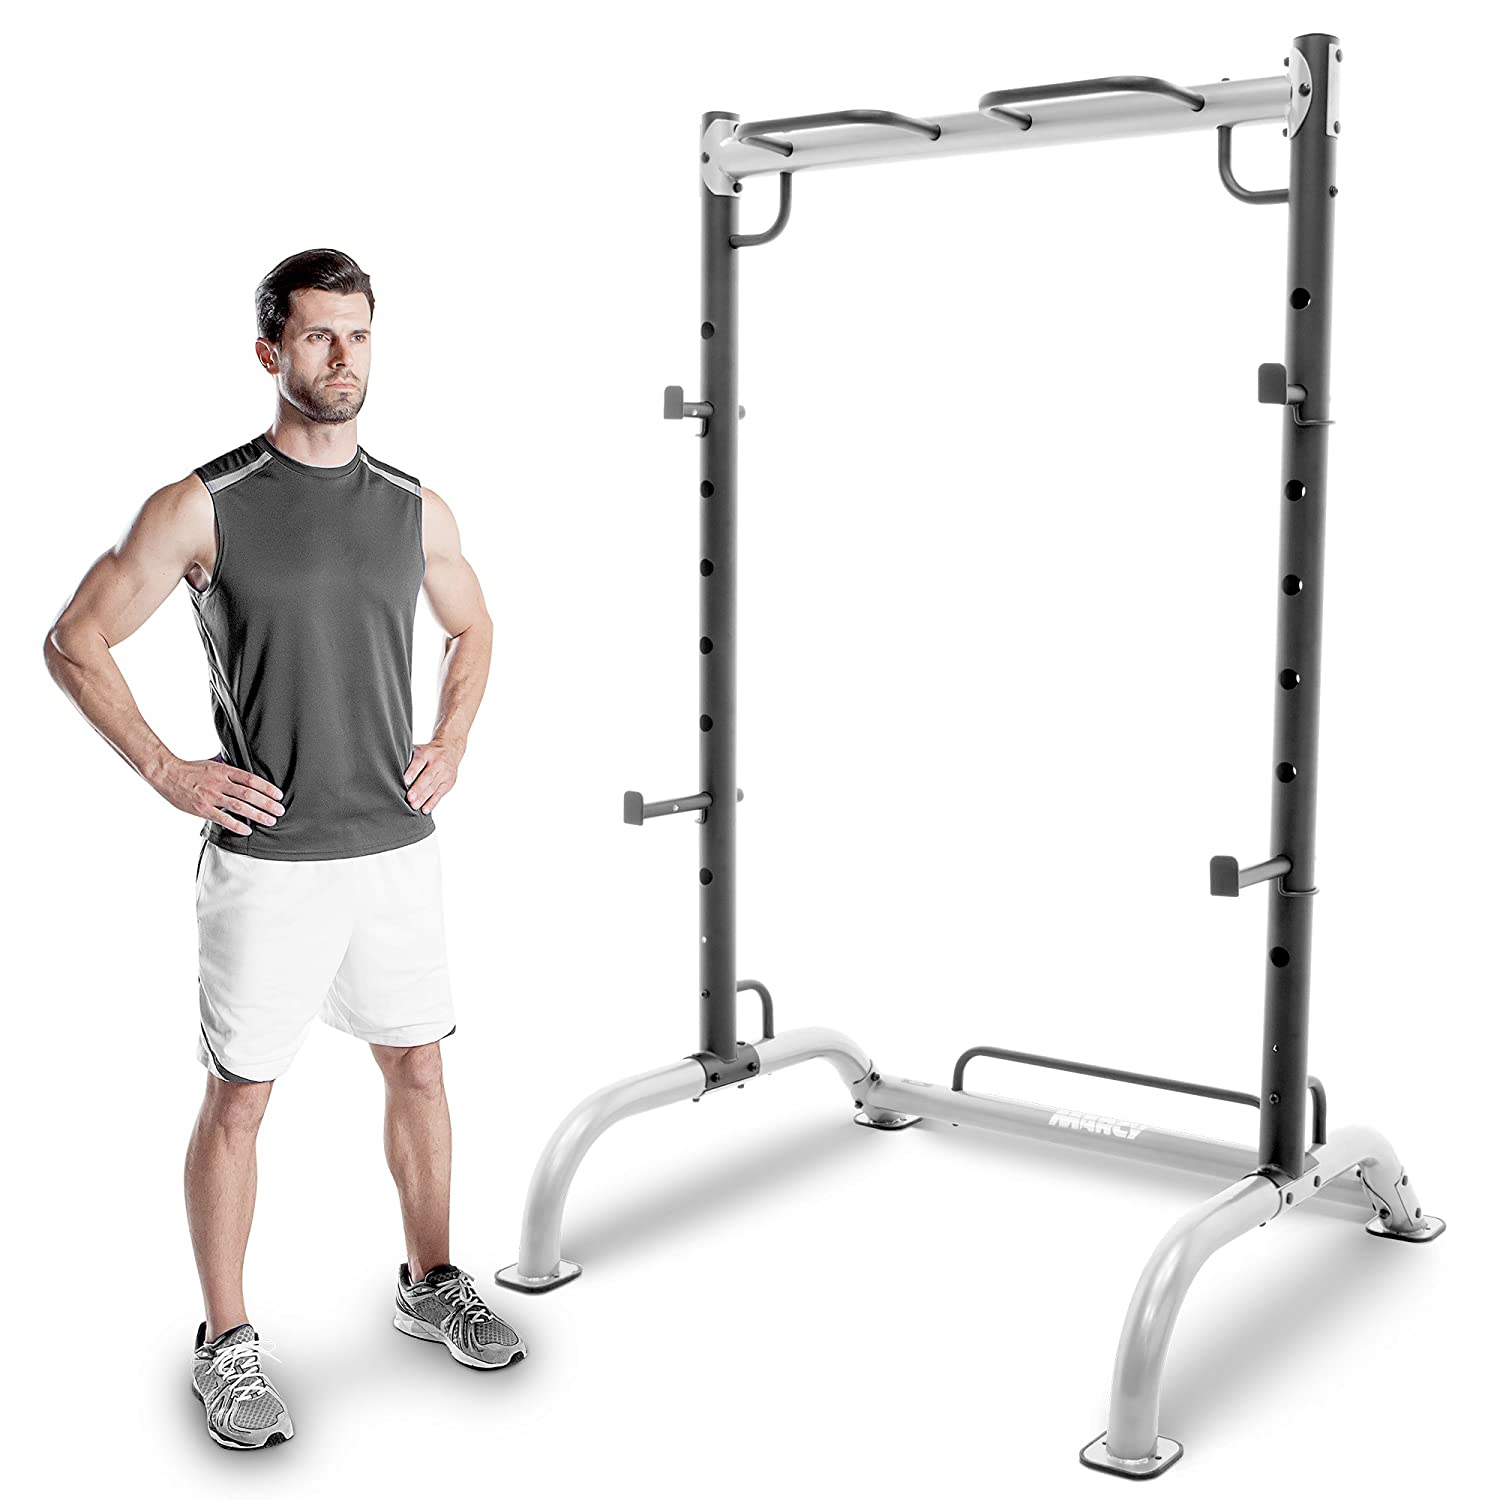 Marcy MWB-70500 Olympic Power Cage with Pull Up Bar - White/Silver, One Size Impex